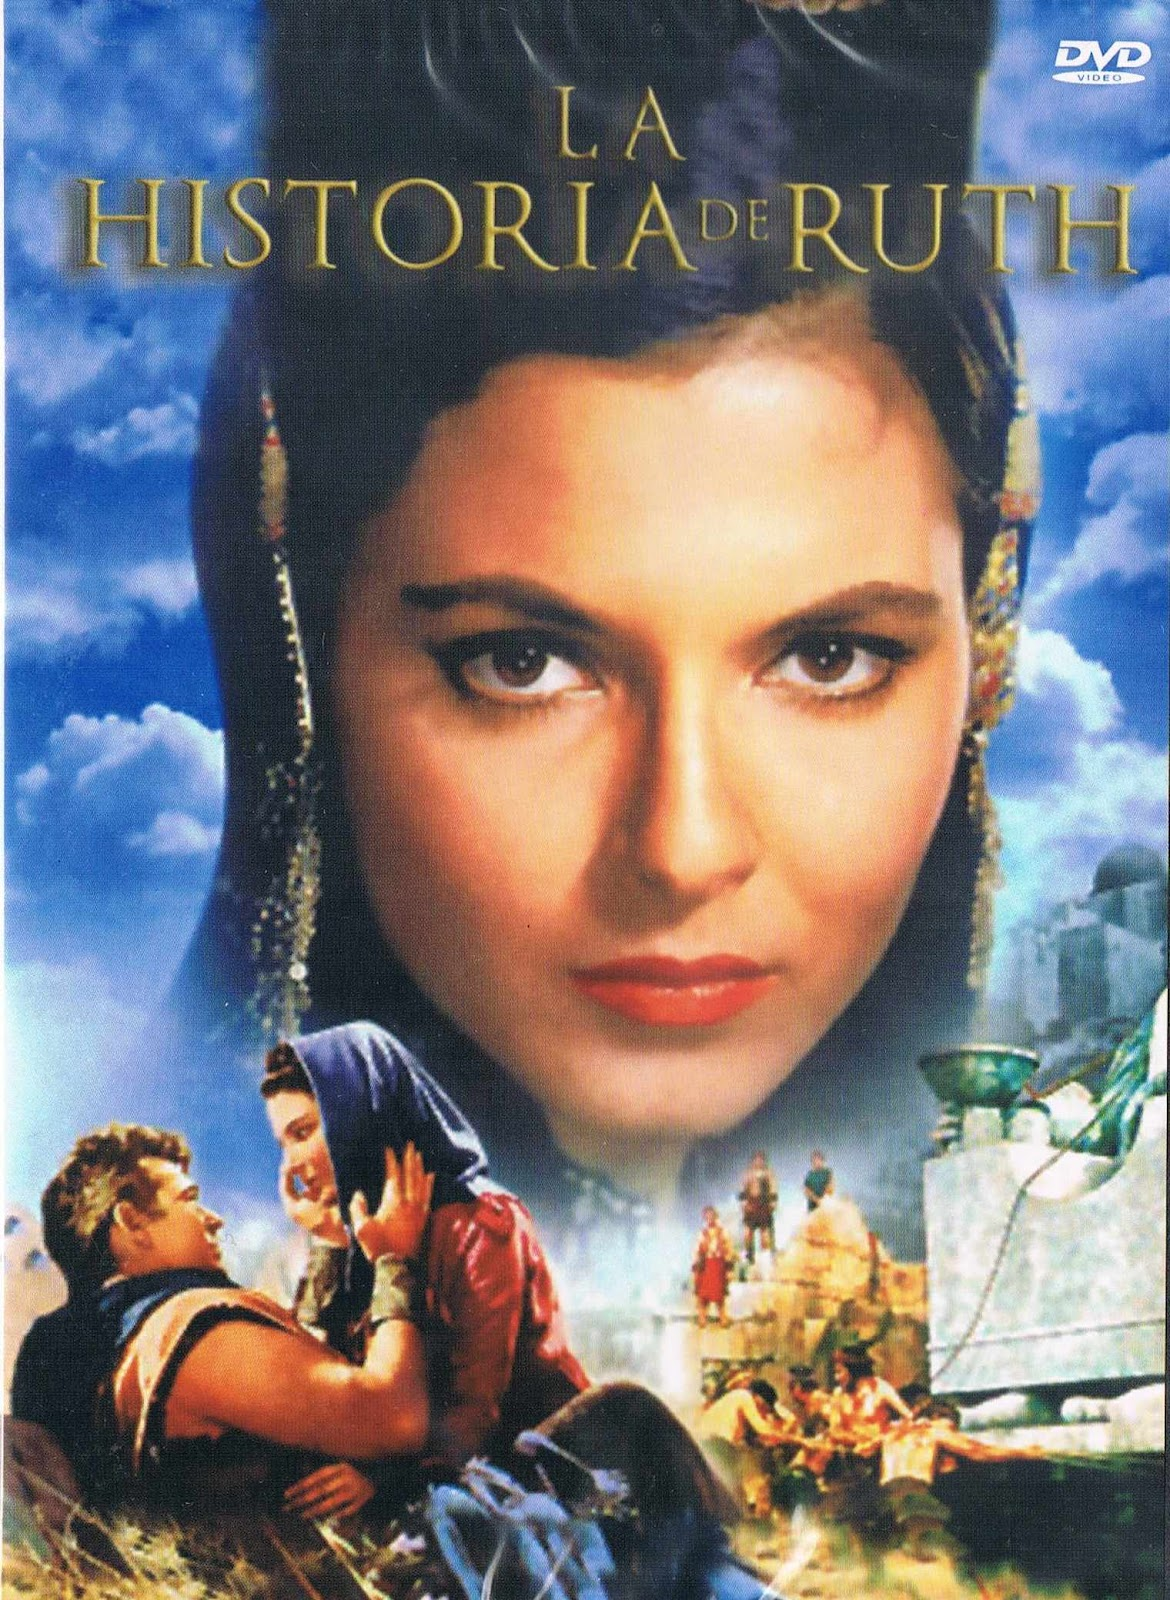 Download A Histria de Ruth  DVDRip AVI Dual udio